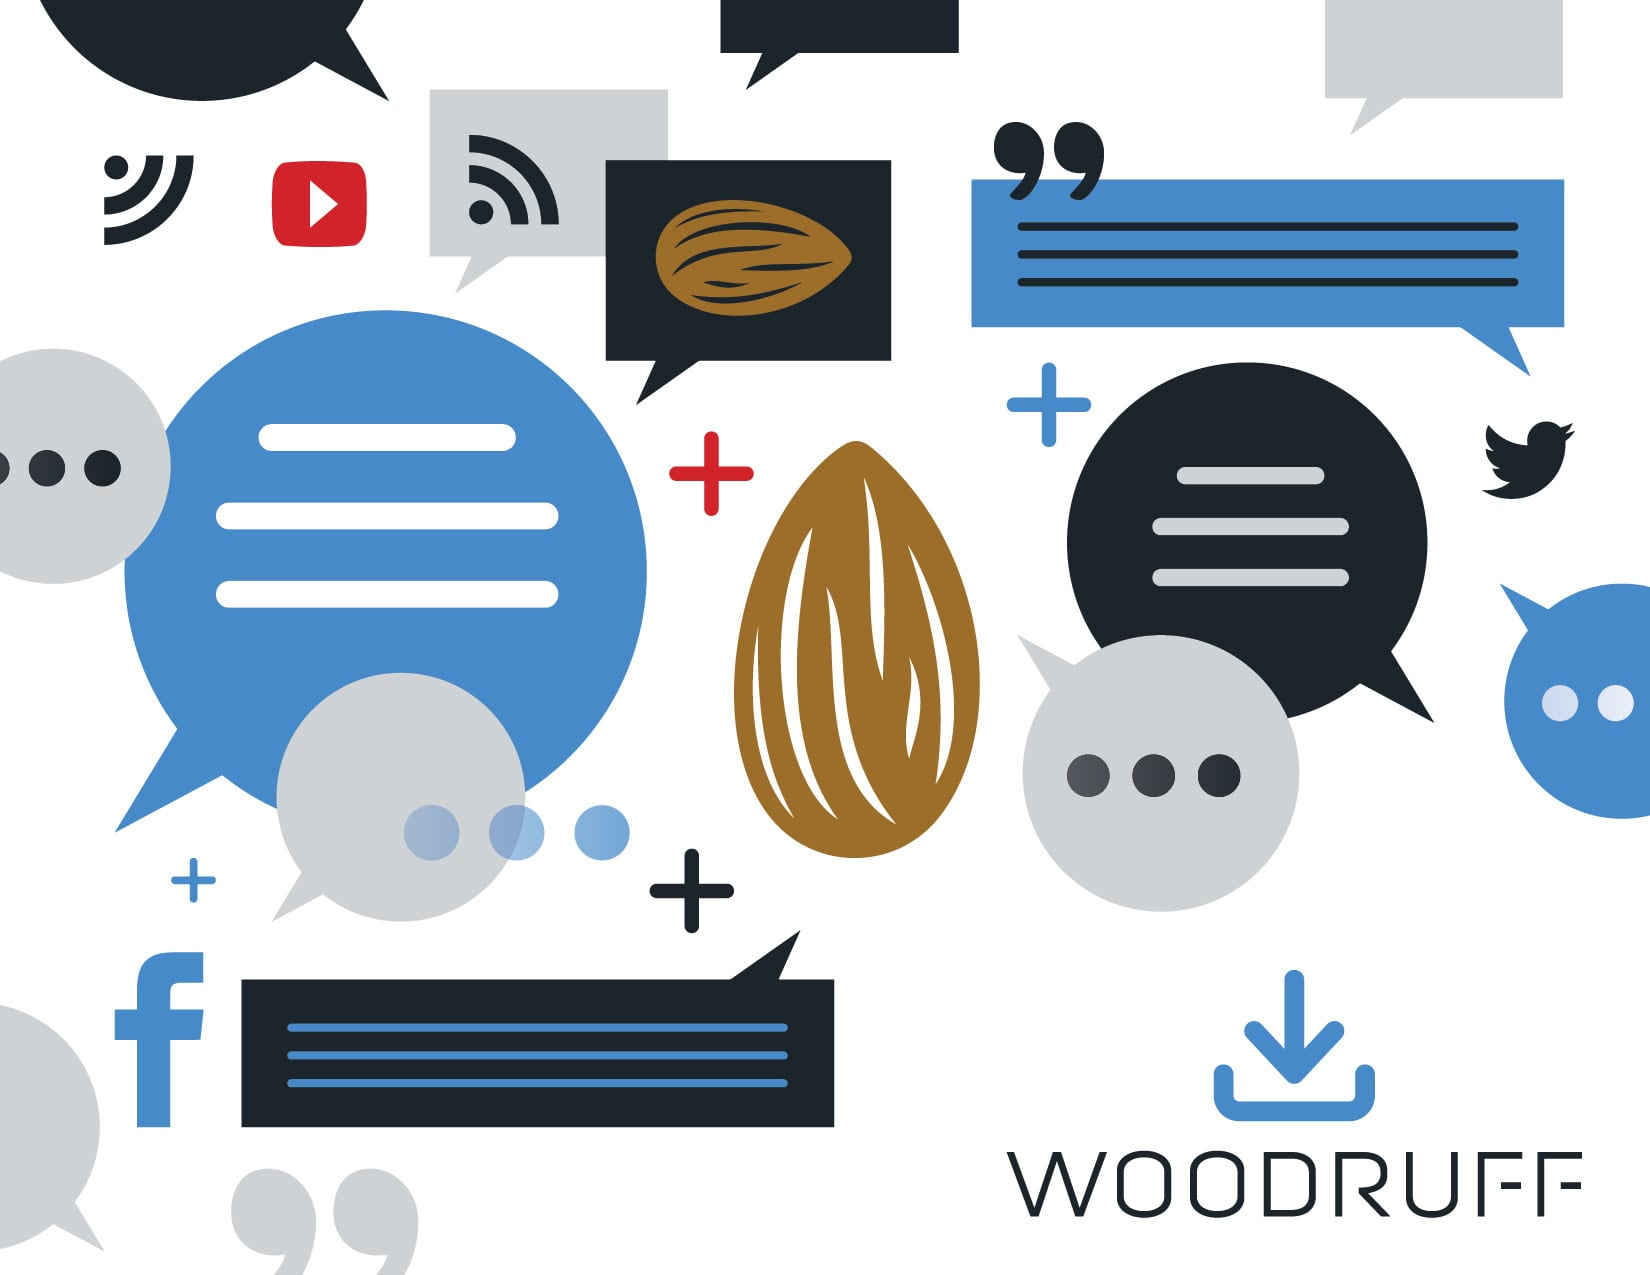 Illustration of an Almond Surrounded by Messaging and Social Media Logos | Woodruff